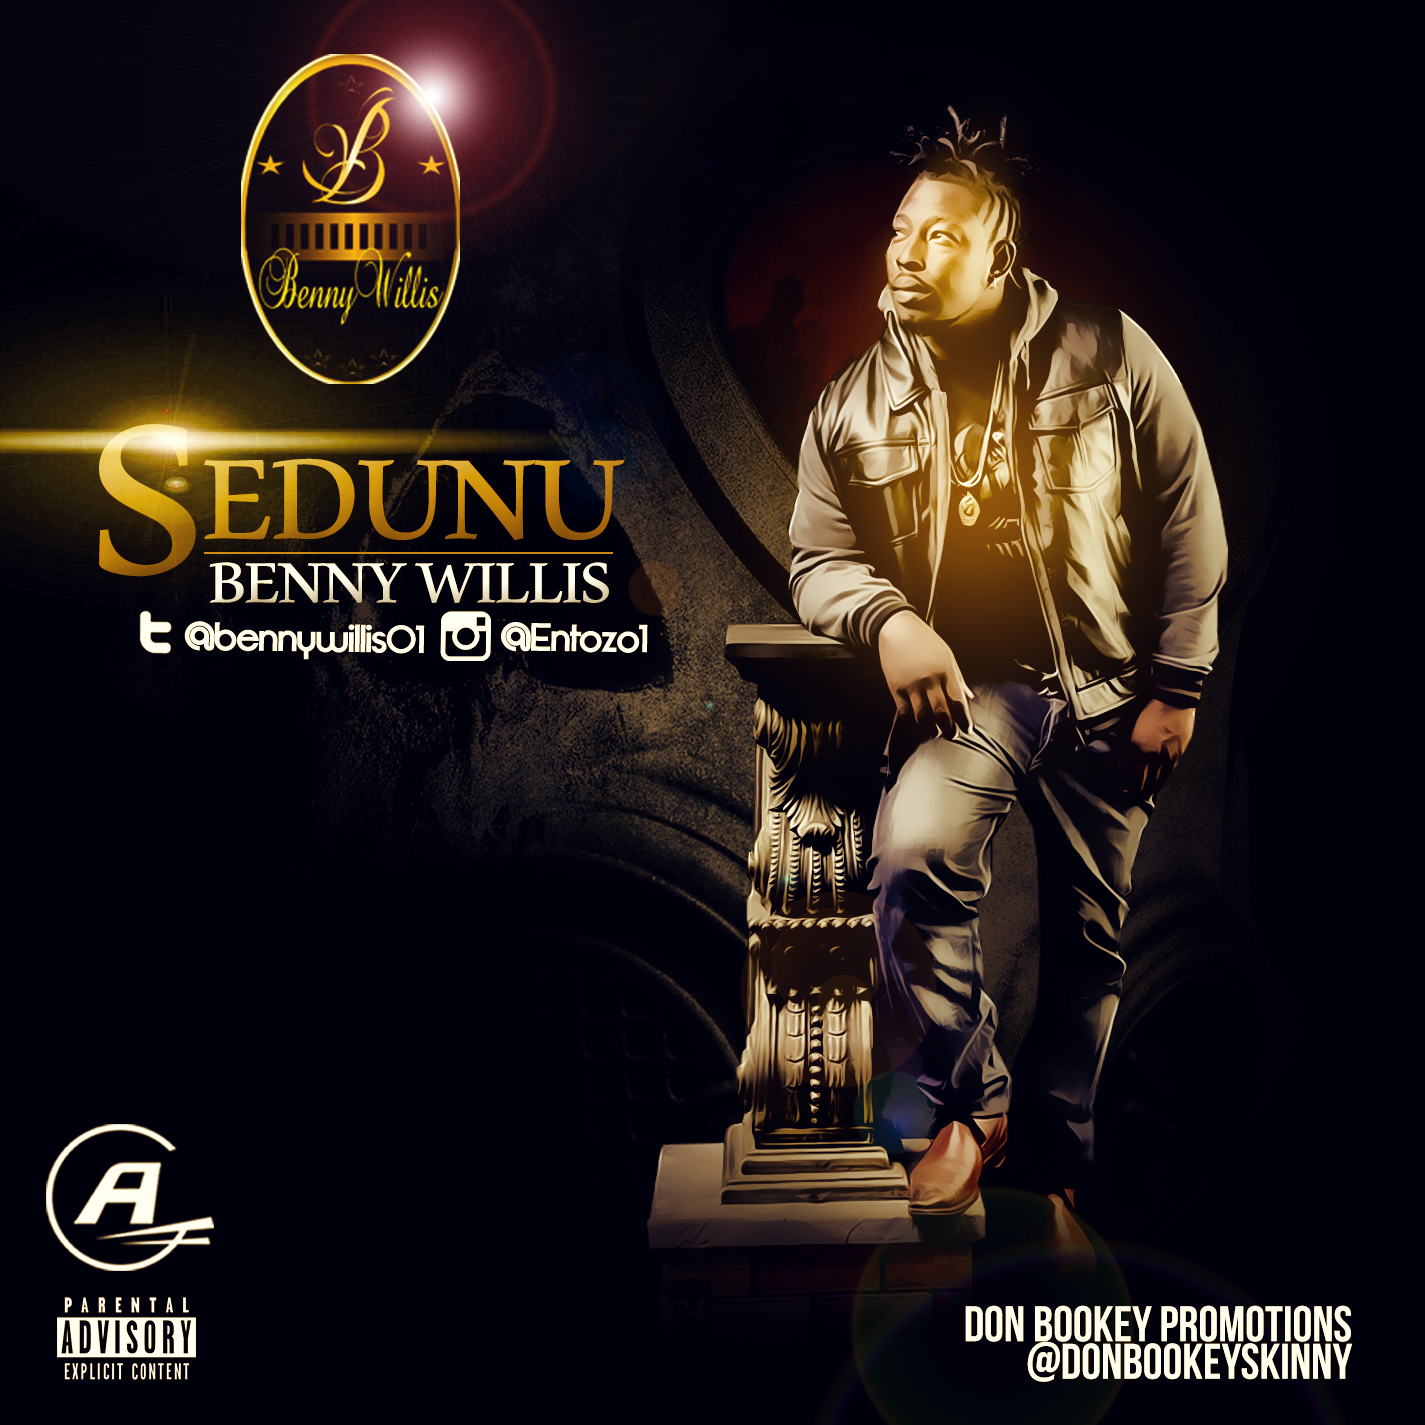 Benny Willis - Sedunu ARTWORK